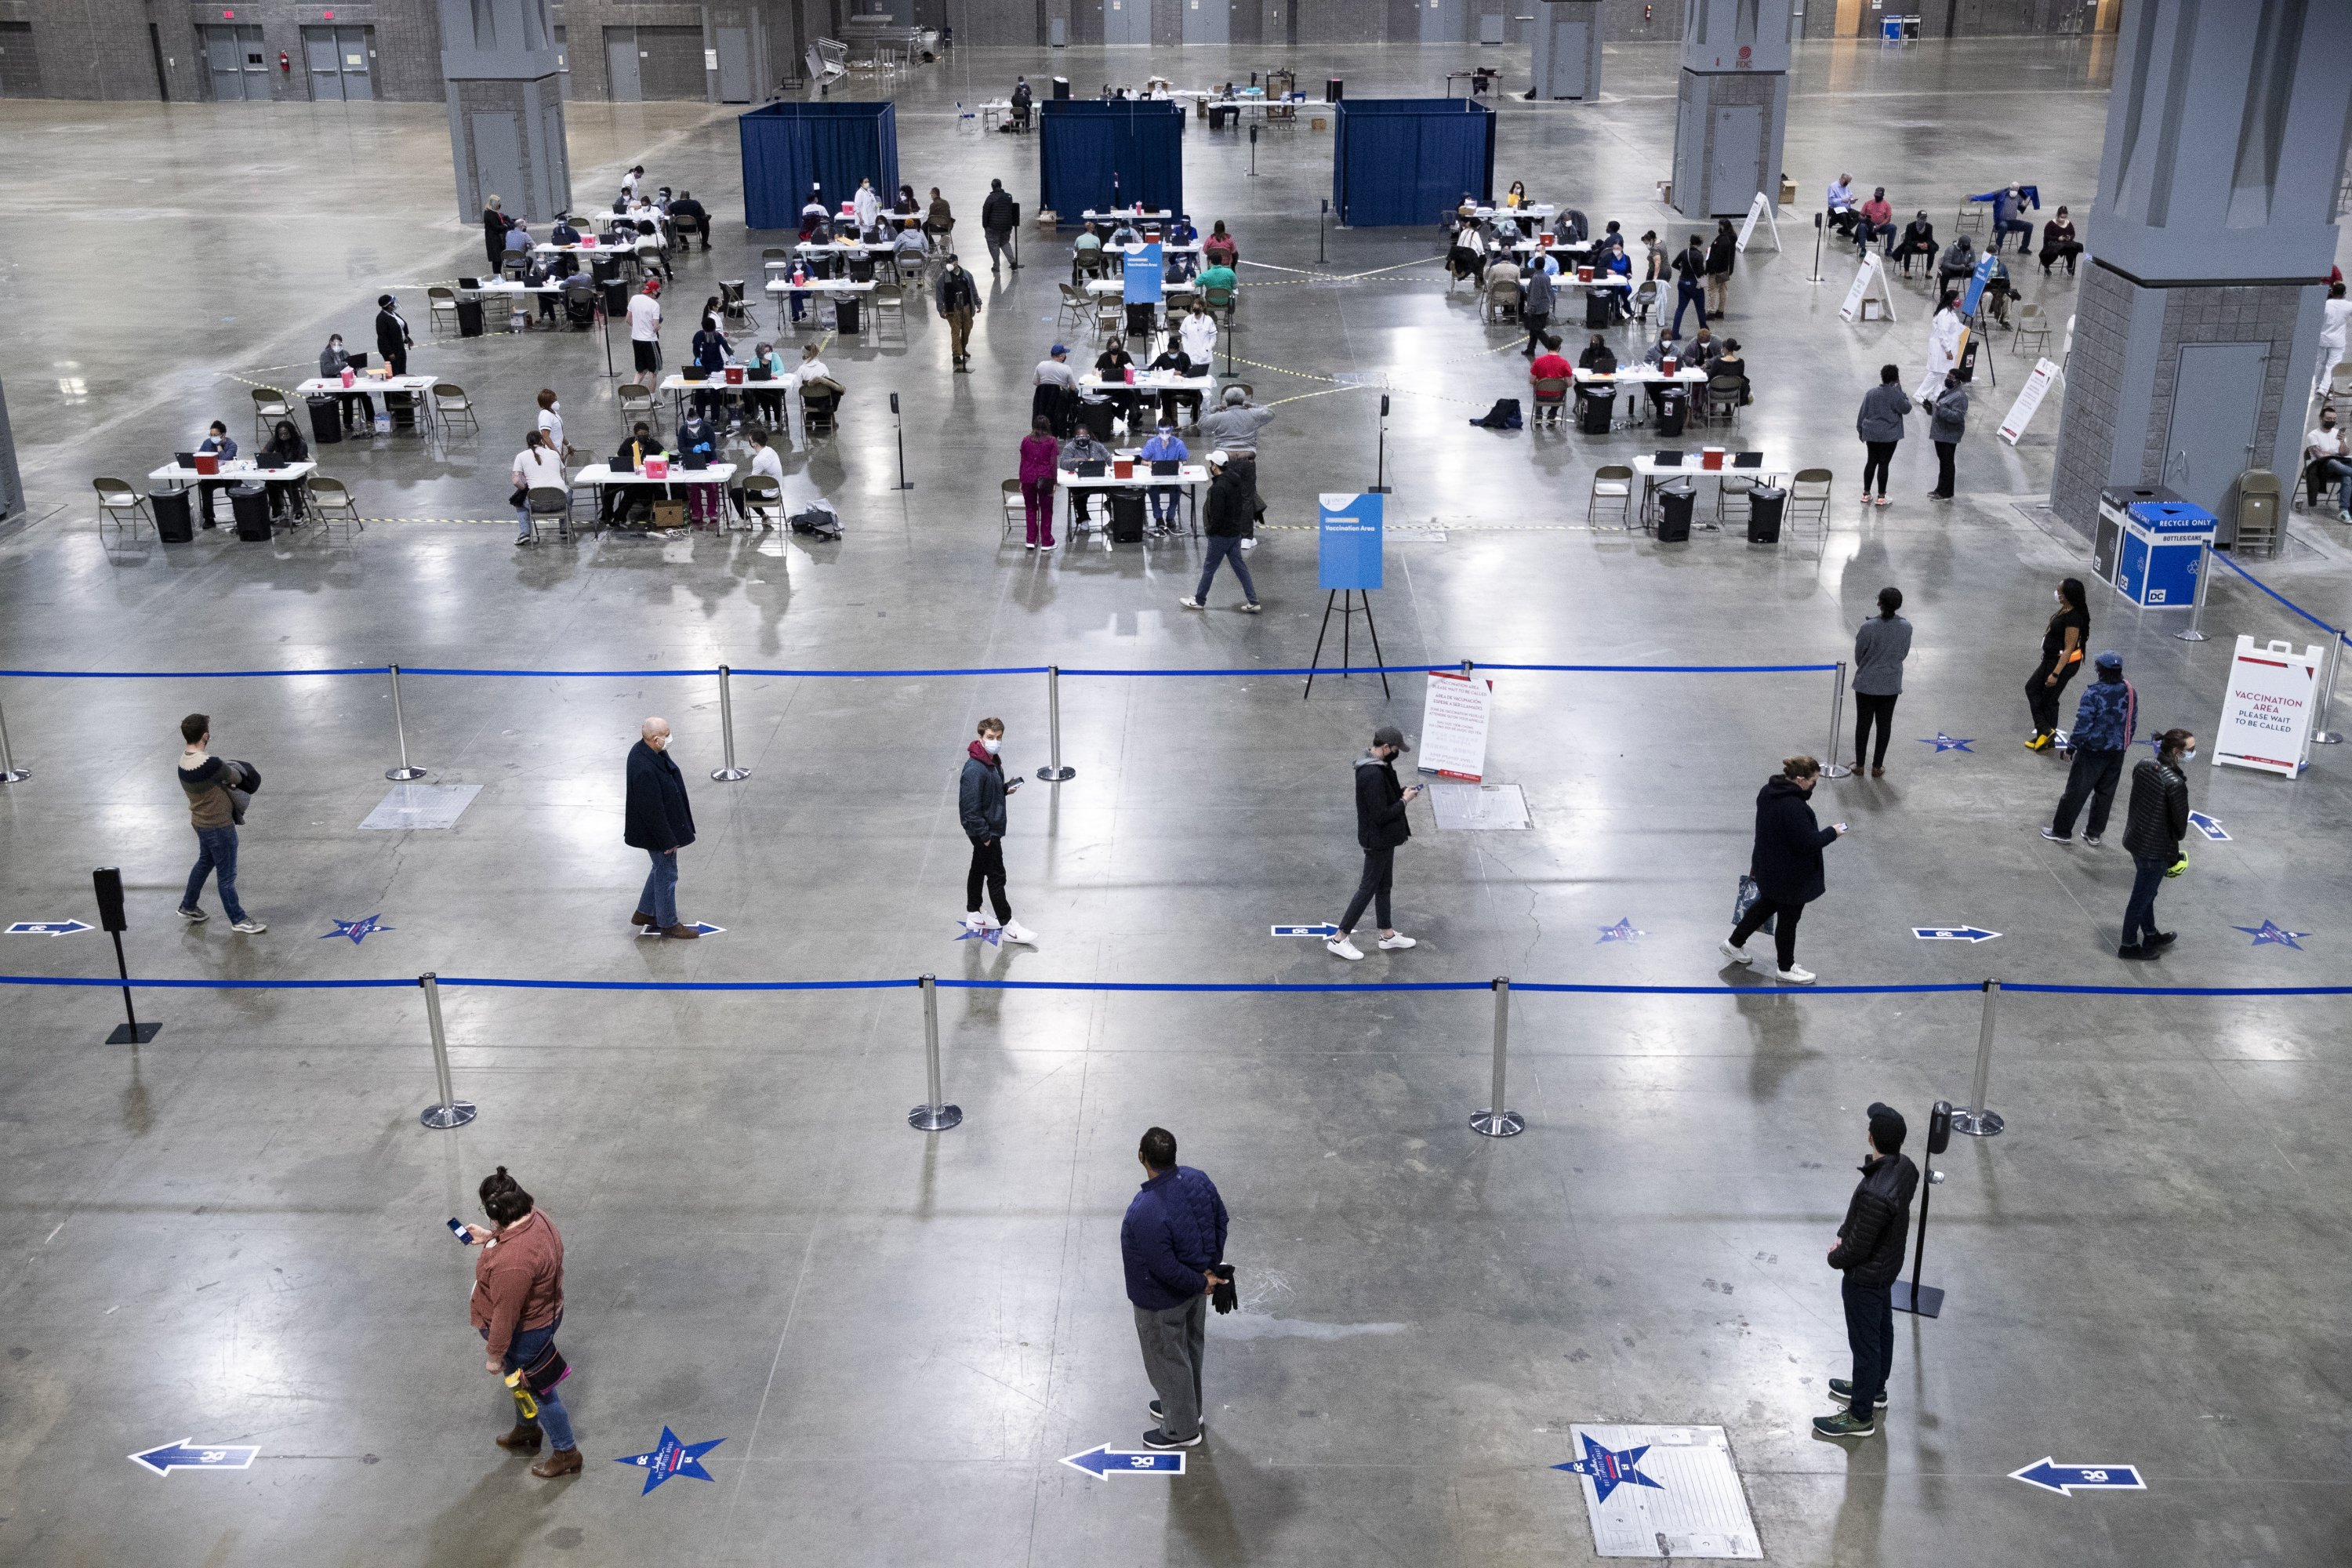 A long line of people wait at a mass vaccination event hosted by Unity Health Care, at Walter E. Washington Convention Center in Washington, D.C., the U.S., April 3, 2021.  (EPA/MICHAEL REYNOLDS)